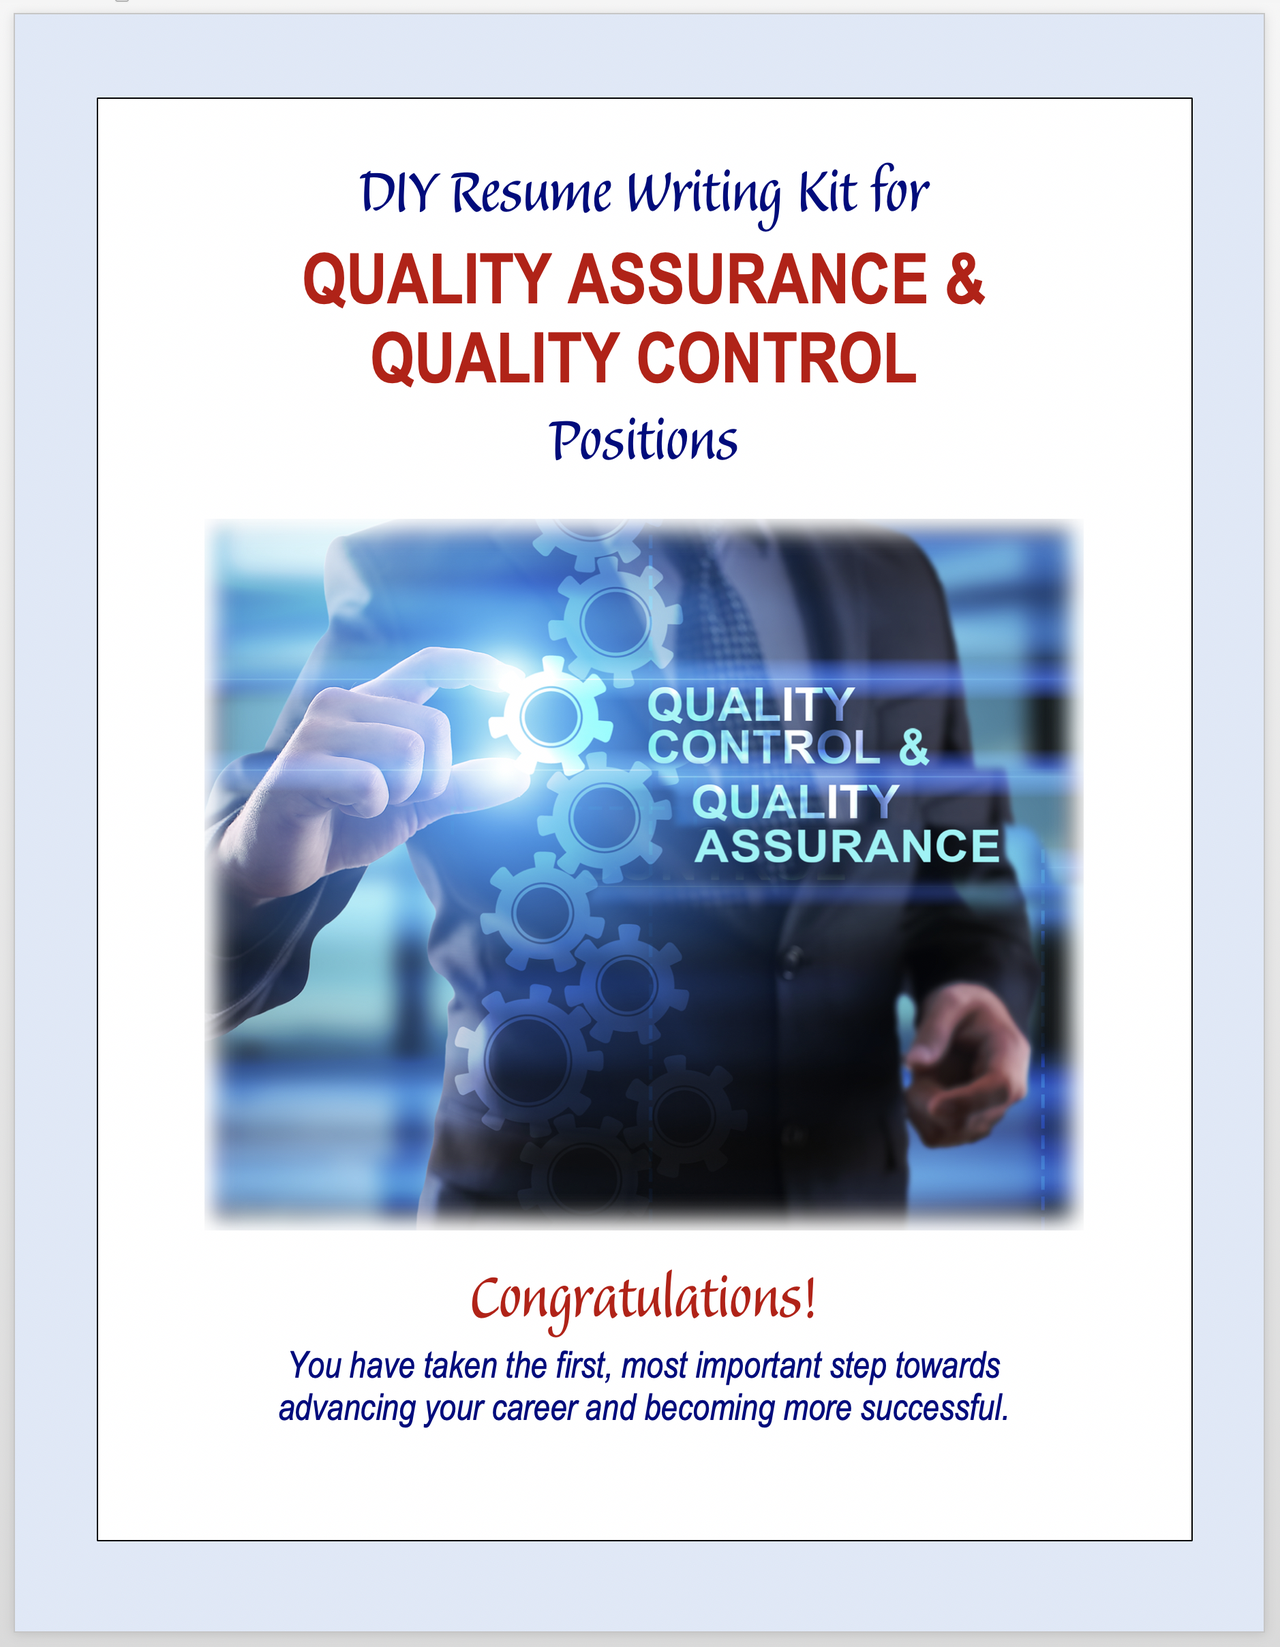 quality assurance & quality control.png